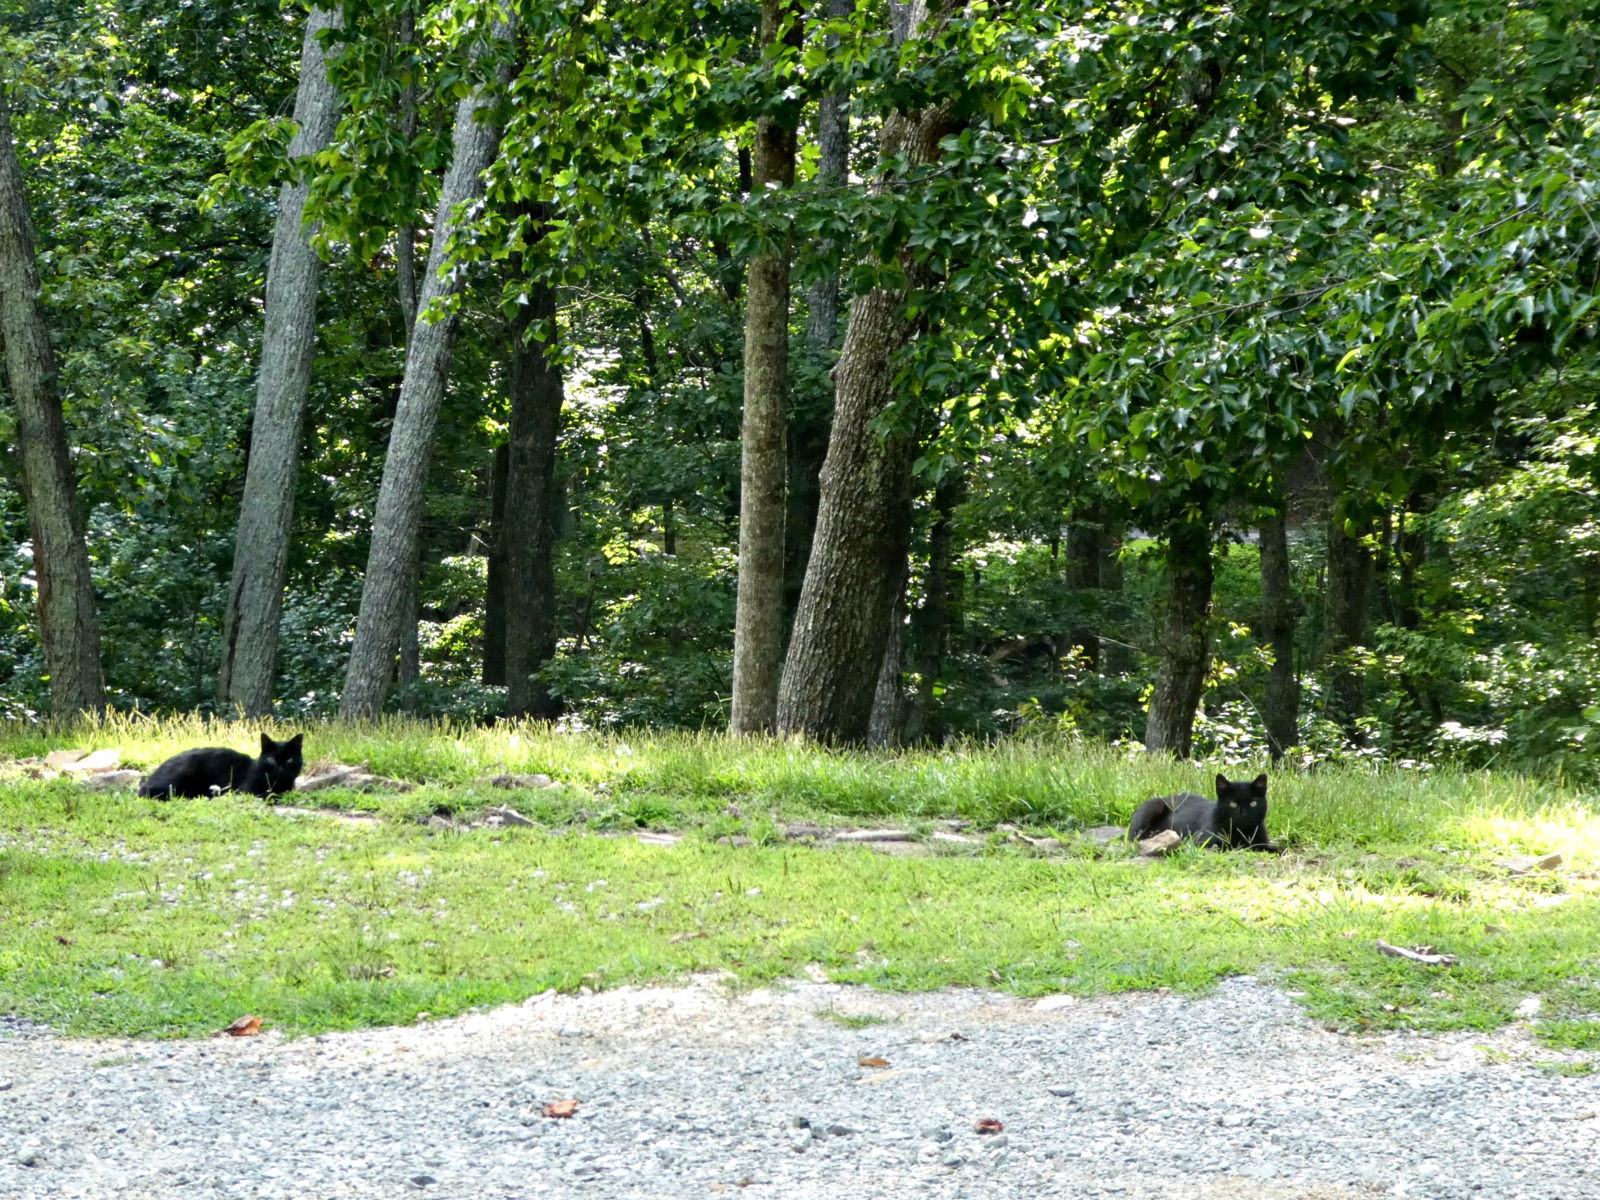 August 11, 2020 - Cottage Cats